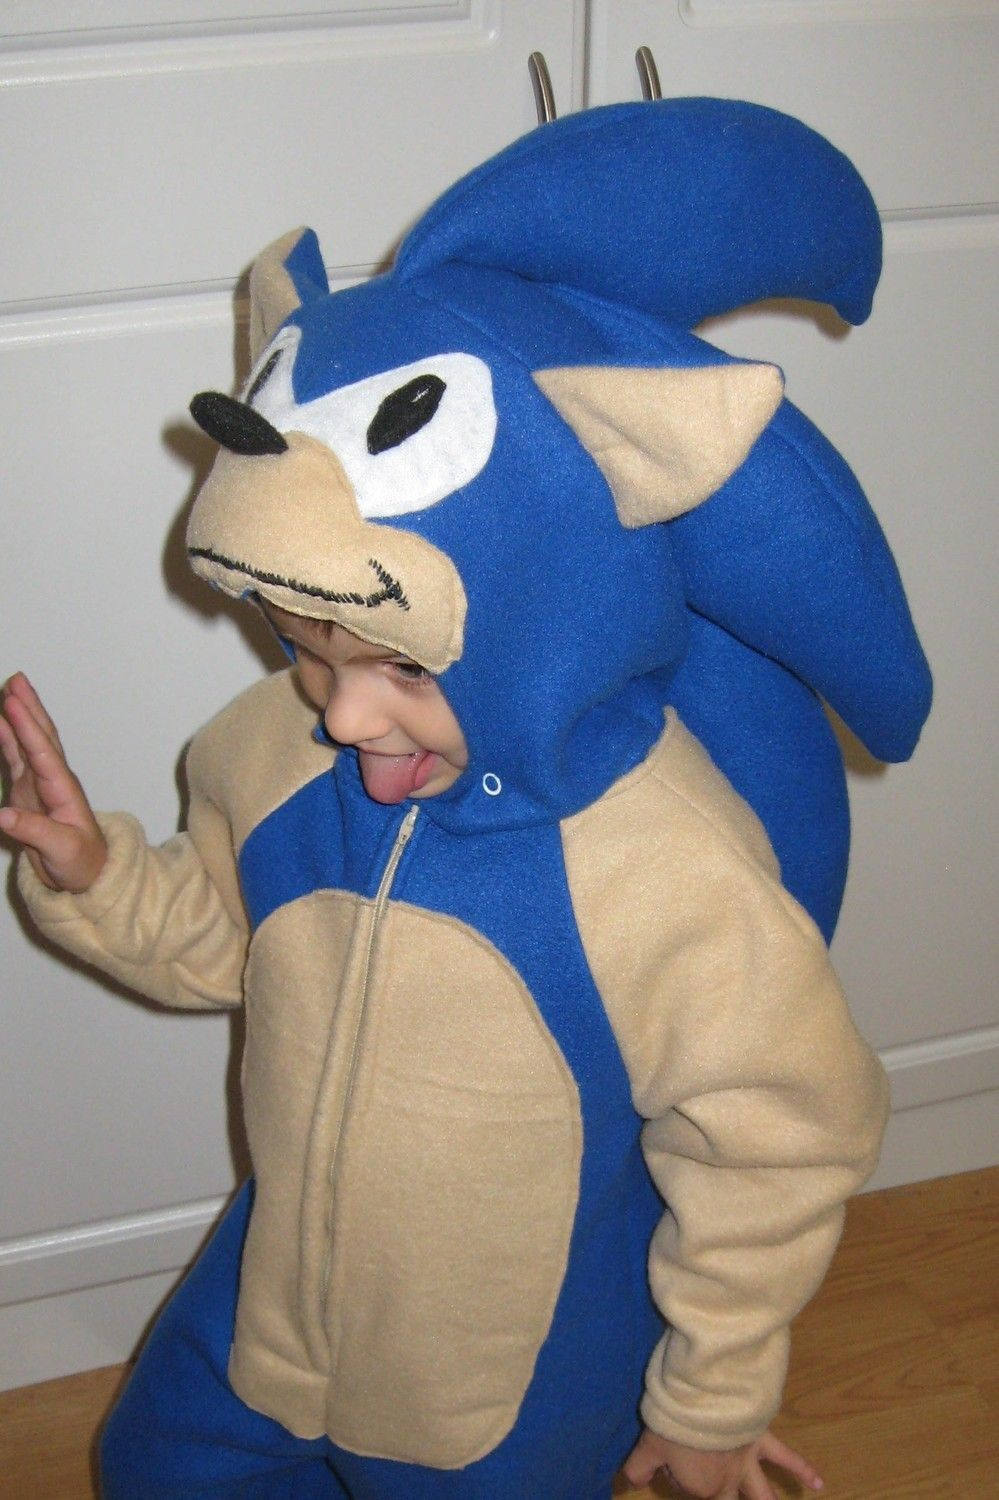 How to make your own female sonic character ehow - Sonic The Hedgehog Costume For Halloween Or Play Children S Sizes 5 To 8